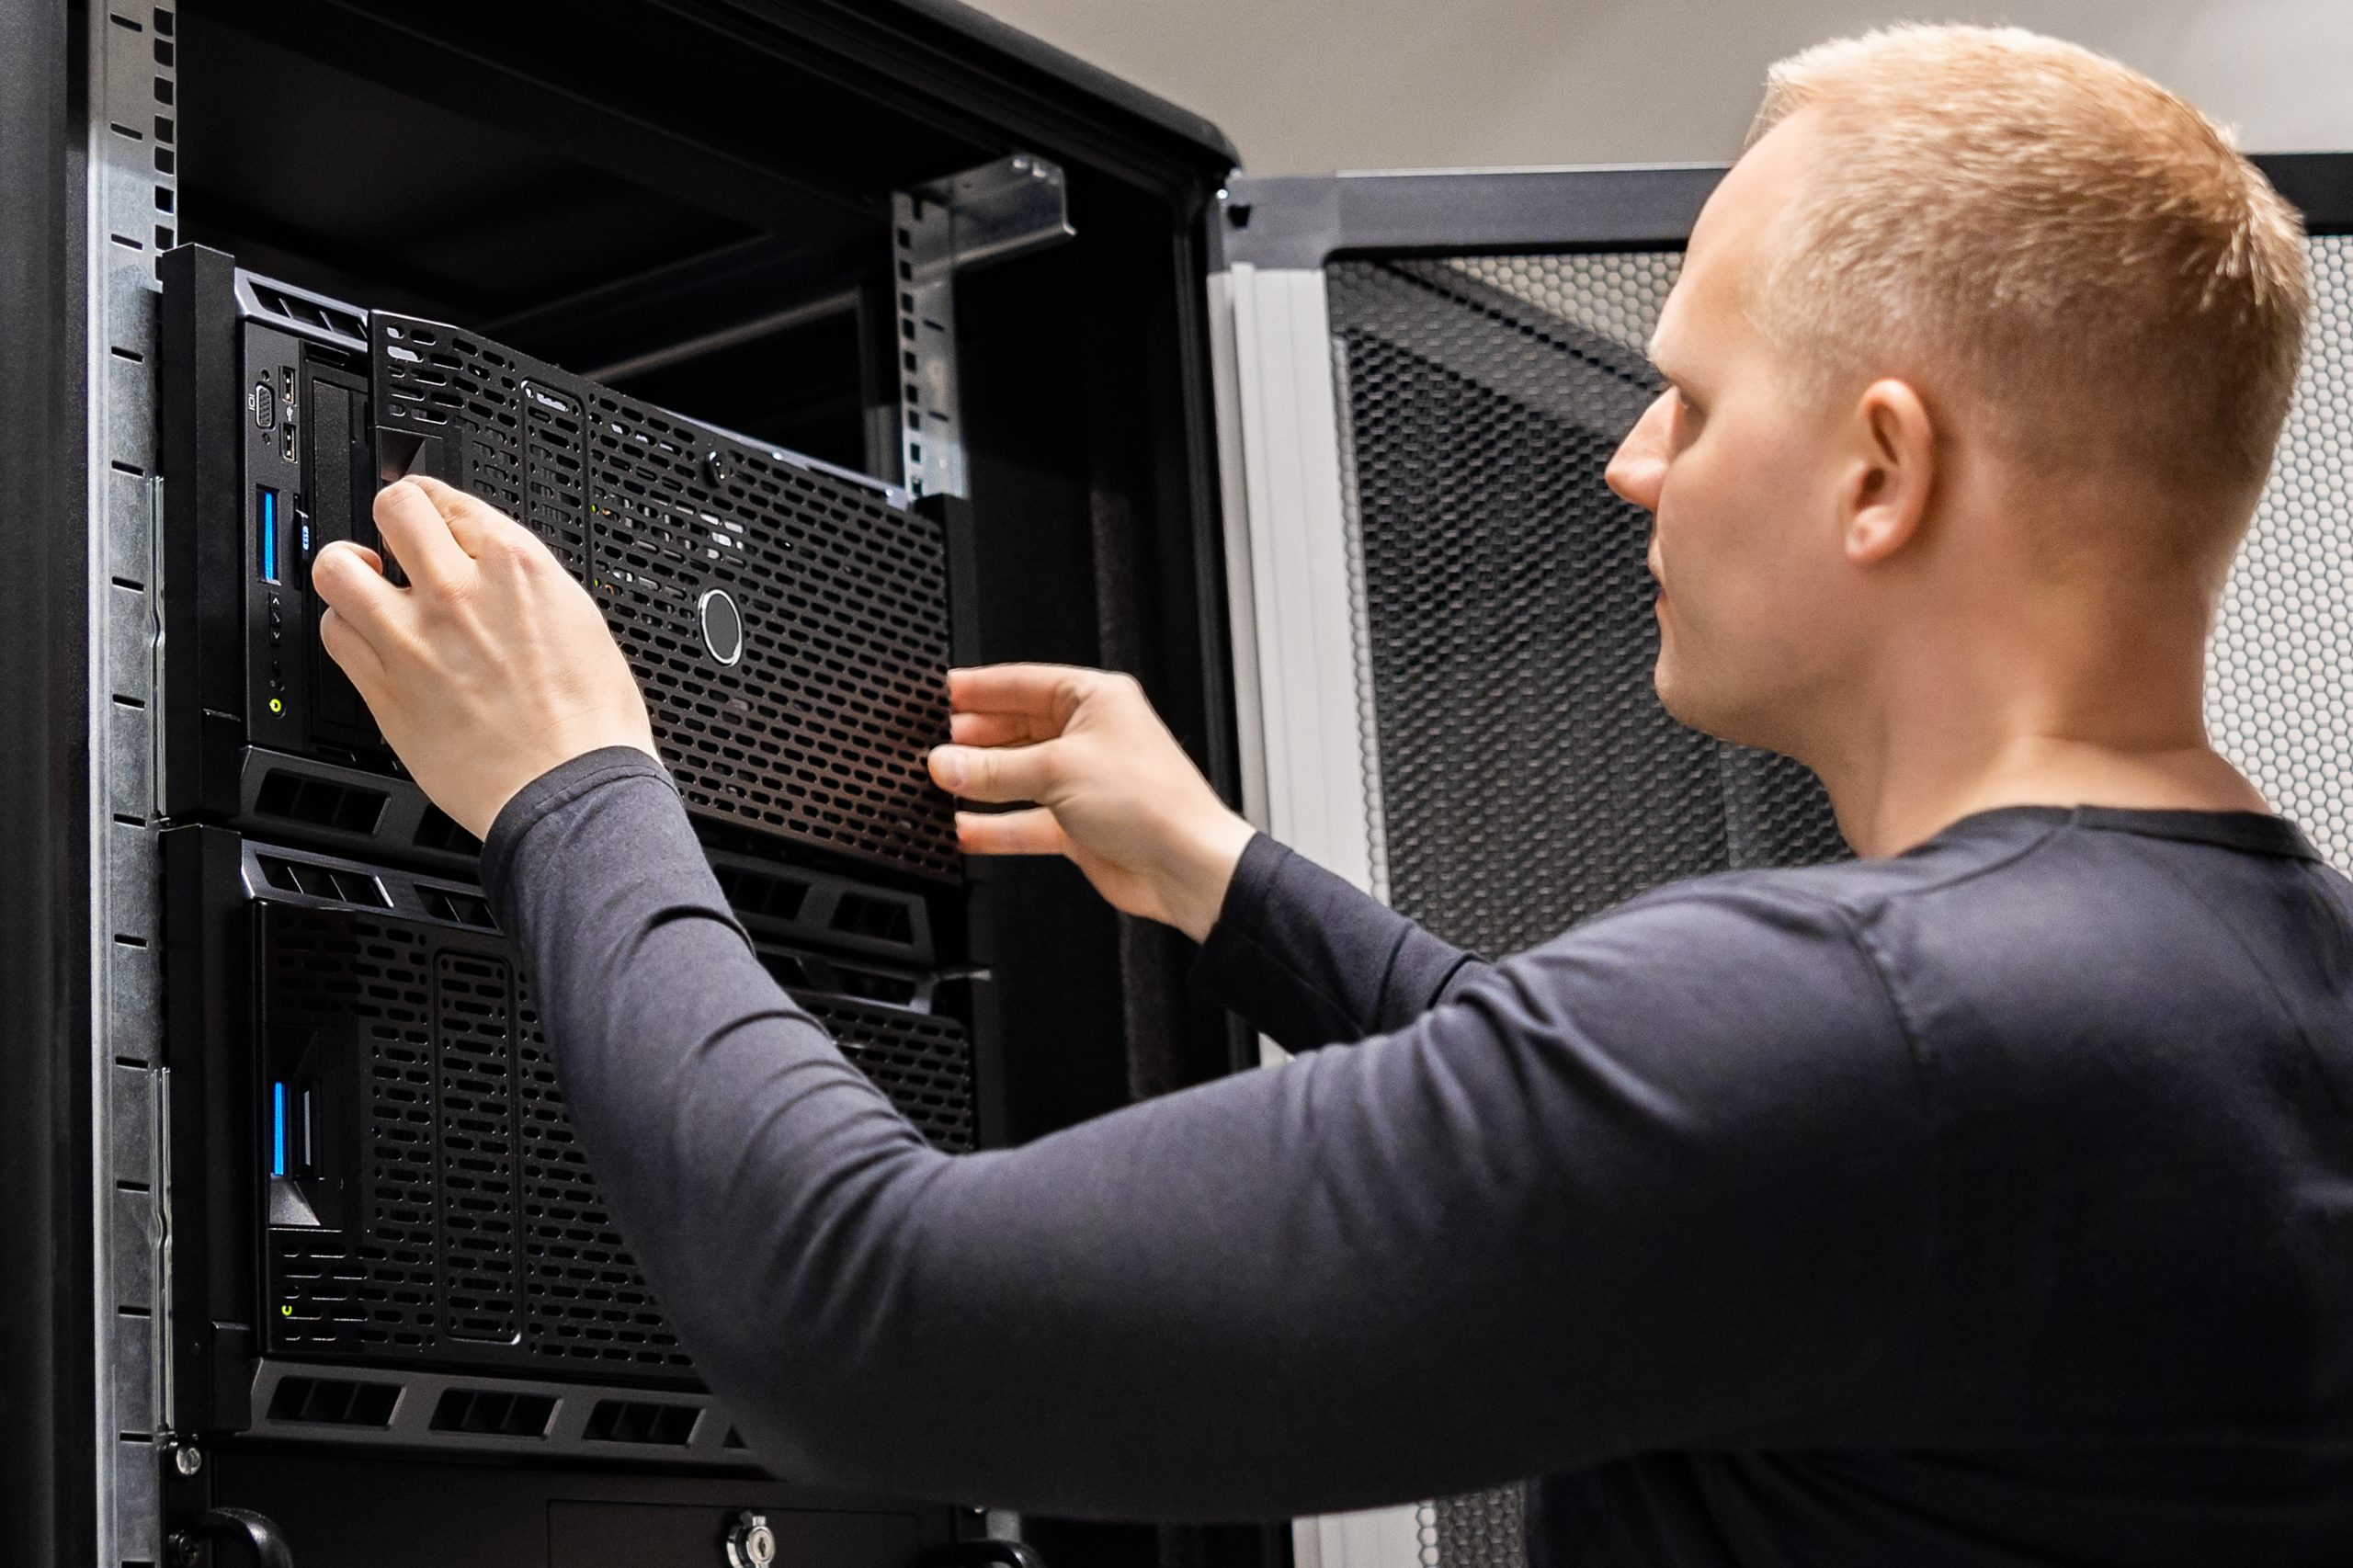 IT technicial setting up drive for Cloud computing storage.